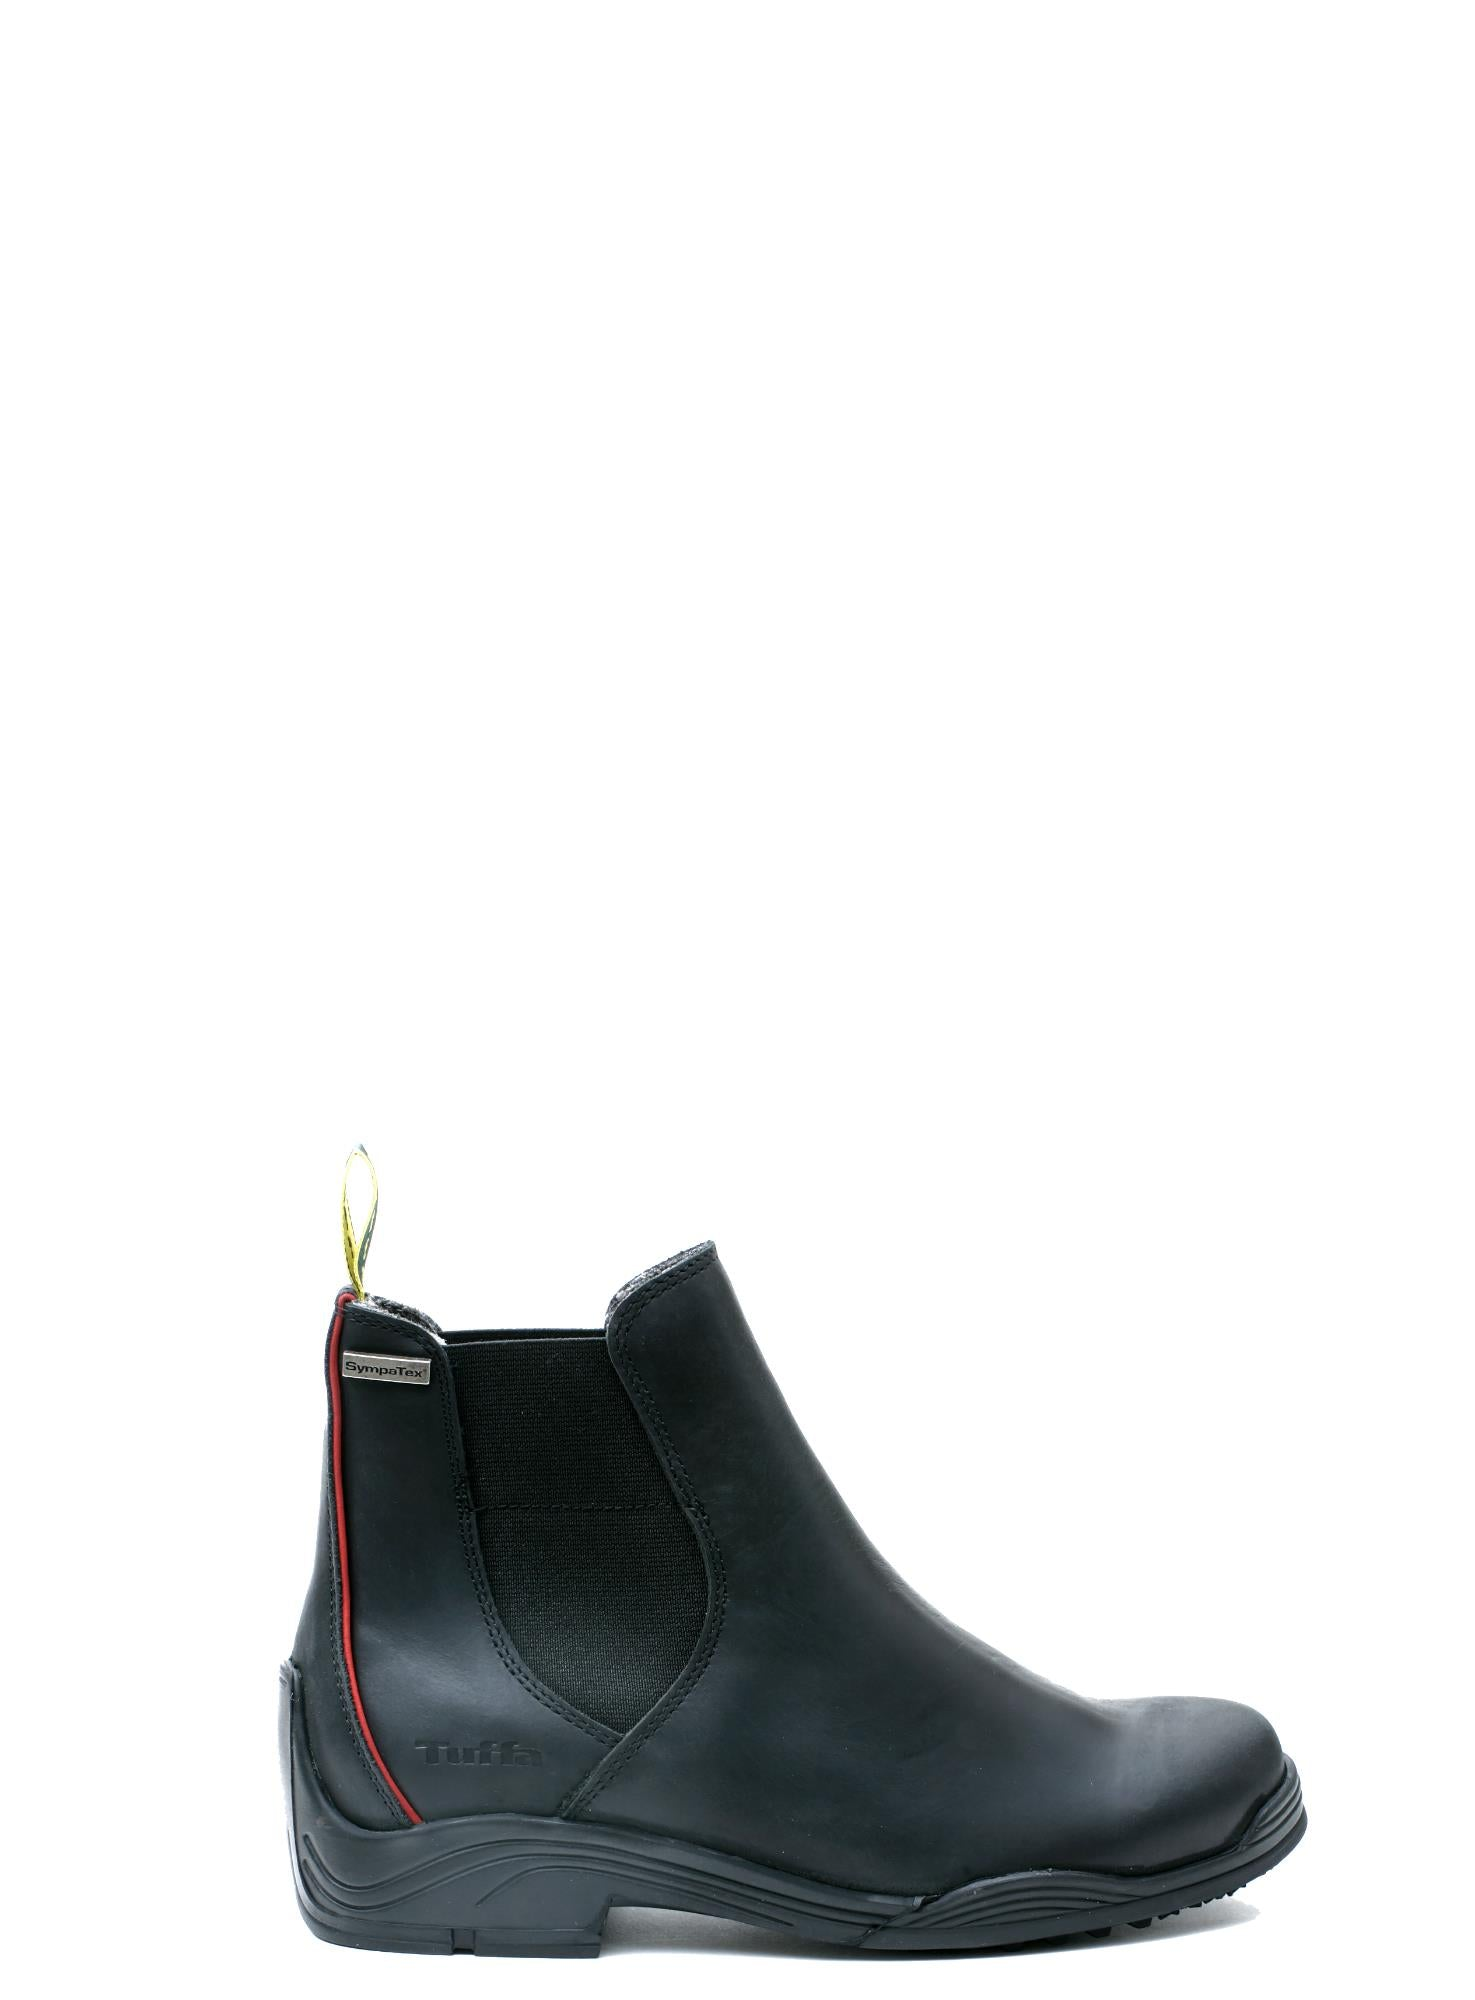 Tuffa Boots/Fjord Waterproof Brown/Black